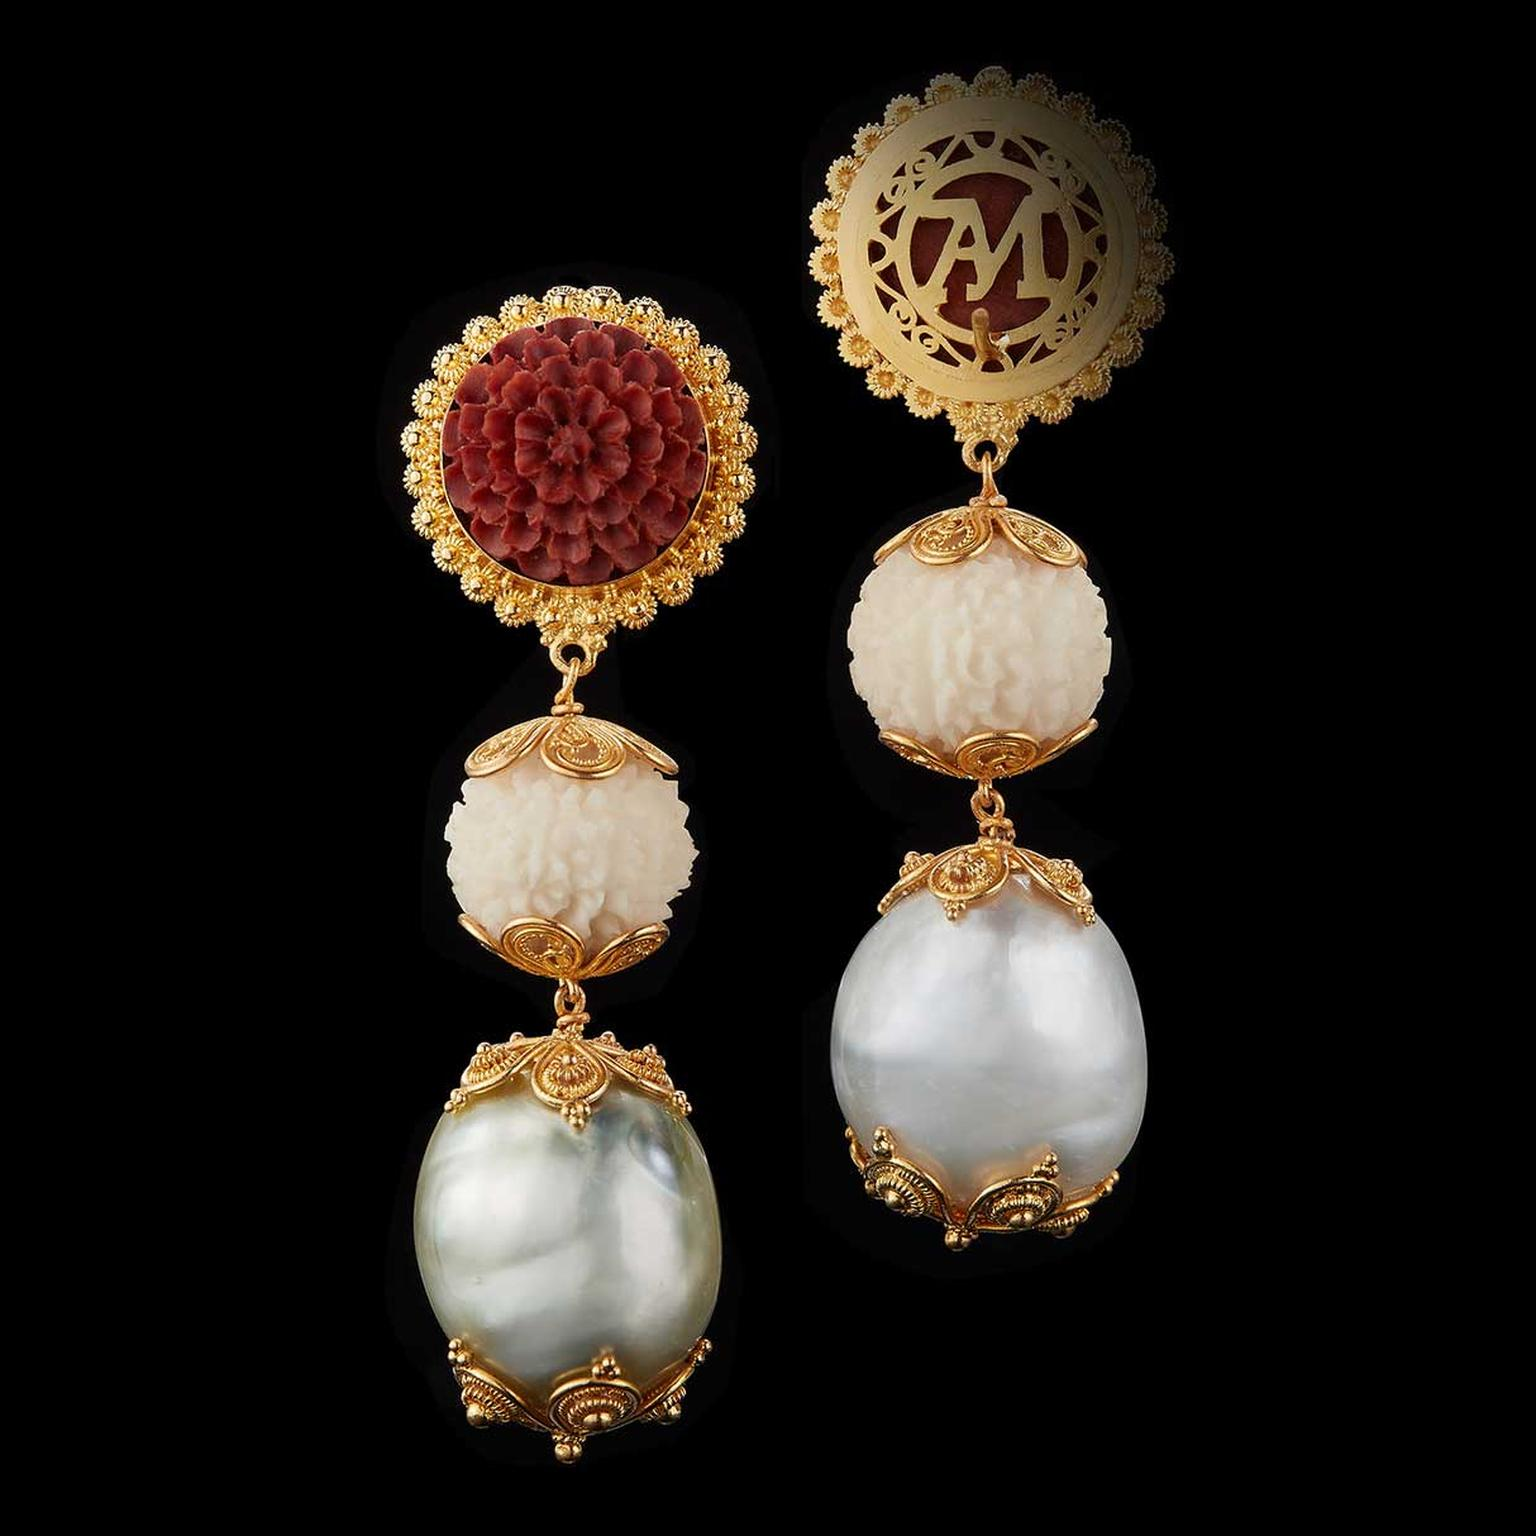 Alexandra Mor Tagua Nut And Baroque Pearl Lotus Earrings